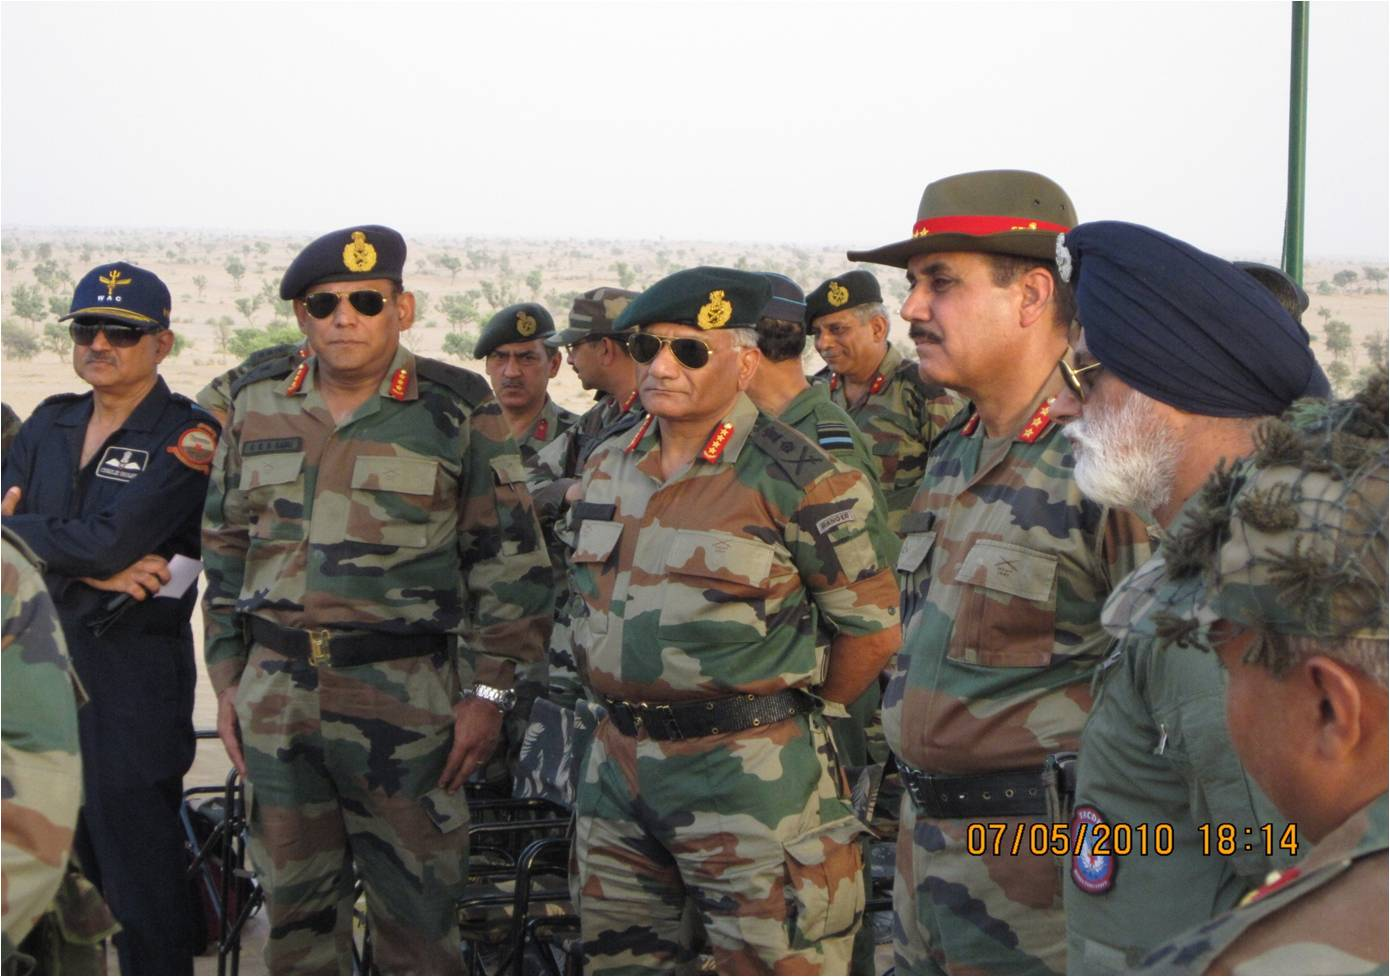 PHOTOS Indian Army Chief Visits Strike Corps For Exercise Yodha Shakti Warrior Strength